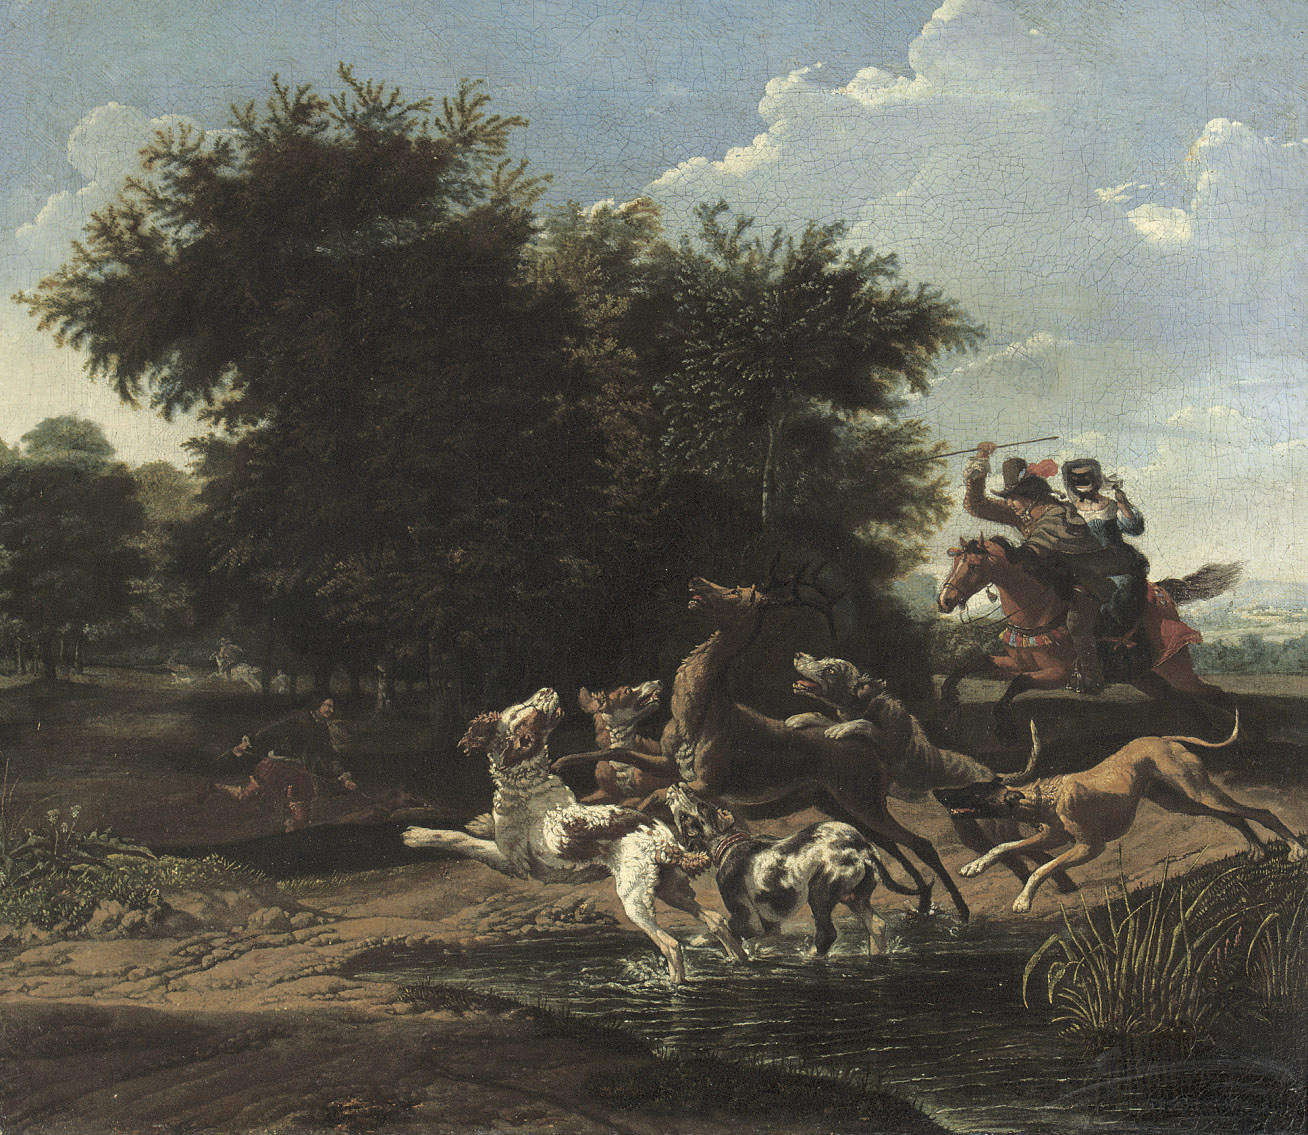 A deer hunt in a wooded landscape